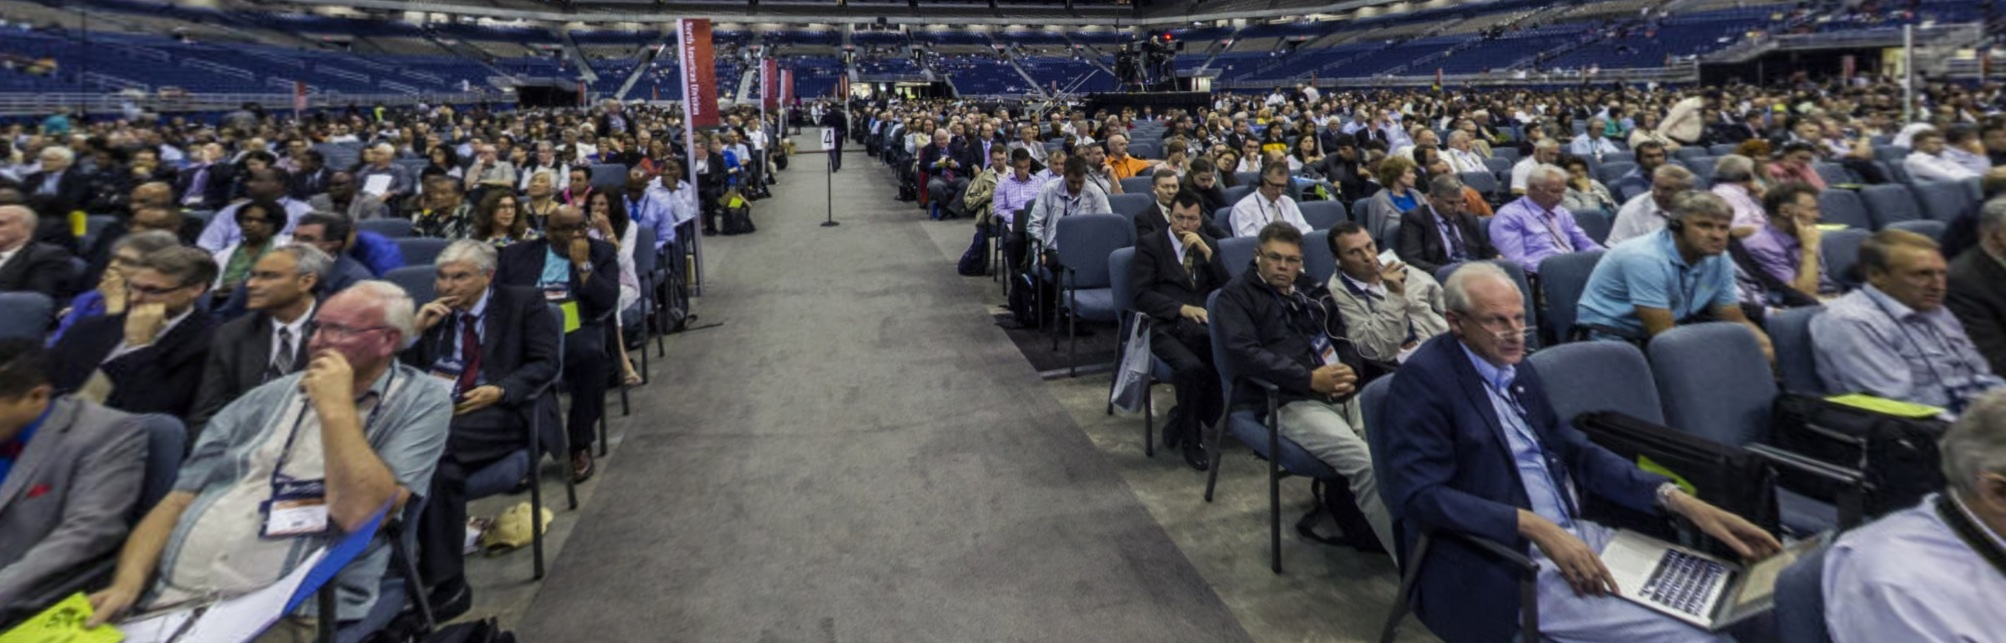 Alamodome on lockdown following women's ordination vote until both sides hug it out